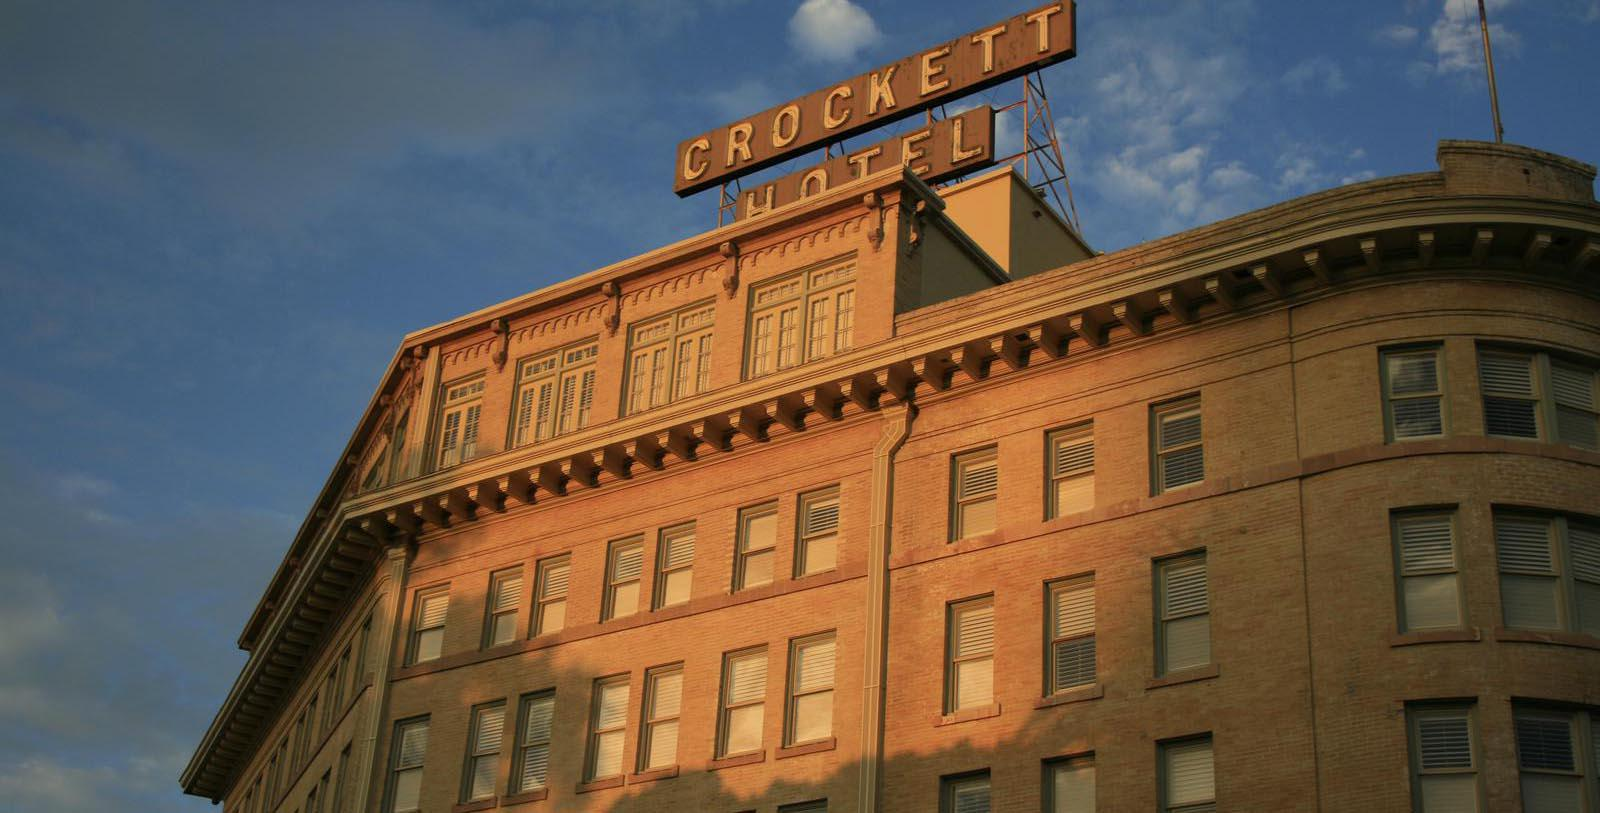 Image of Exterior The Crockett Hotel, 1909, Member of Historic Hotels of America, in San Antonio, Texas, Hot Deals